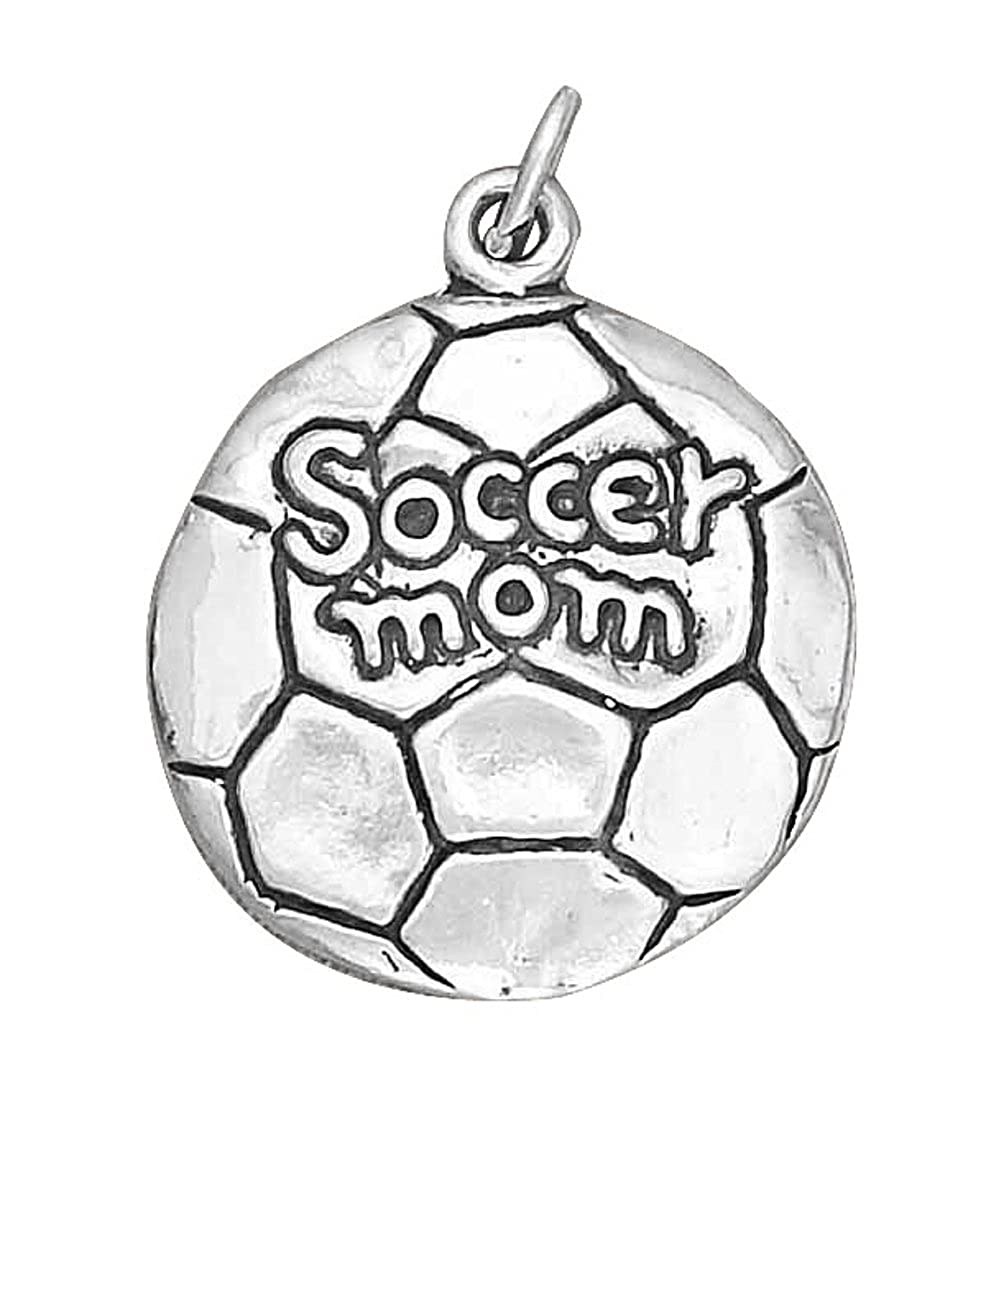 Sterling Silver 7 4.5mm Charm Bracelet With AttachedSoccer Mom Sports Word Charm